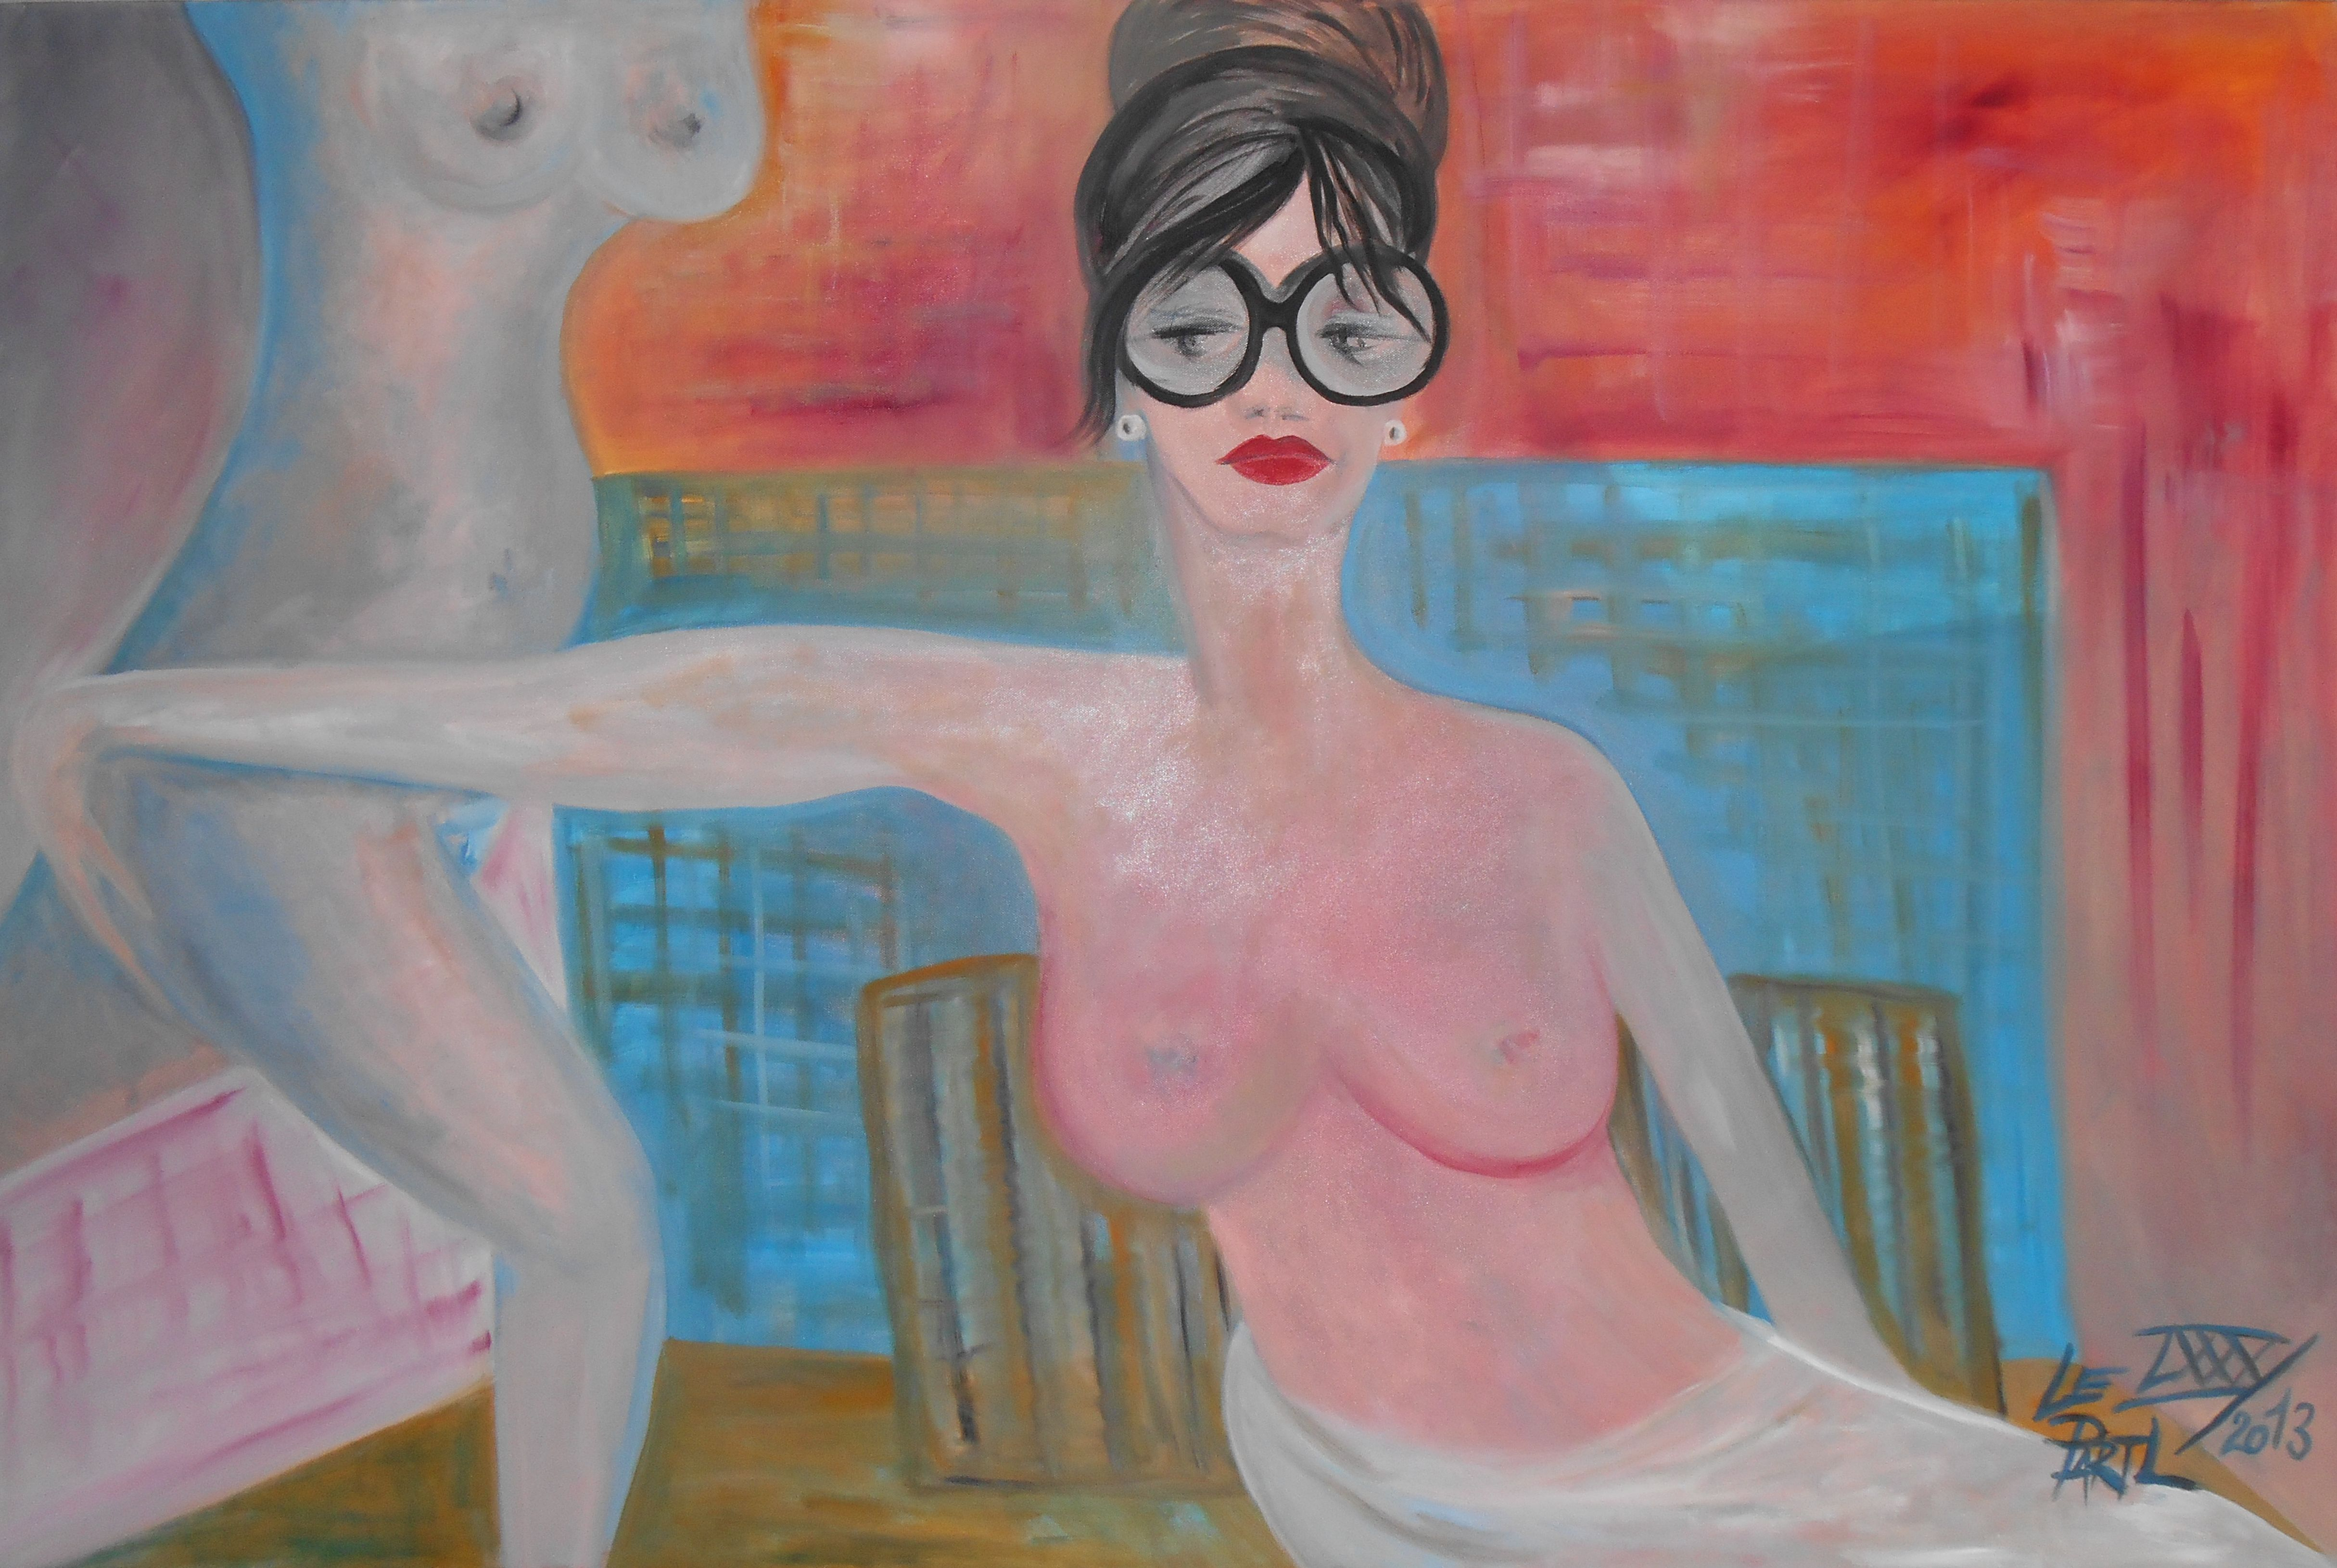 Bad Dreams artwork by Lenka Le Partl - art listed for sale on Artplode